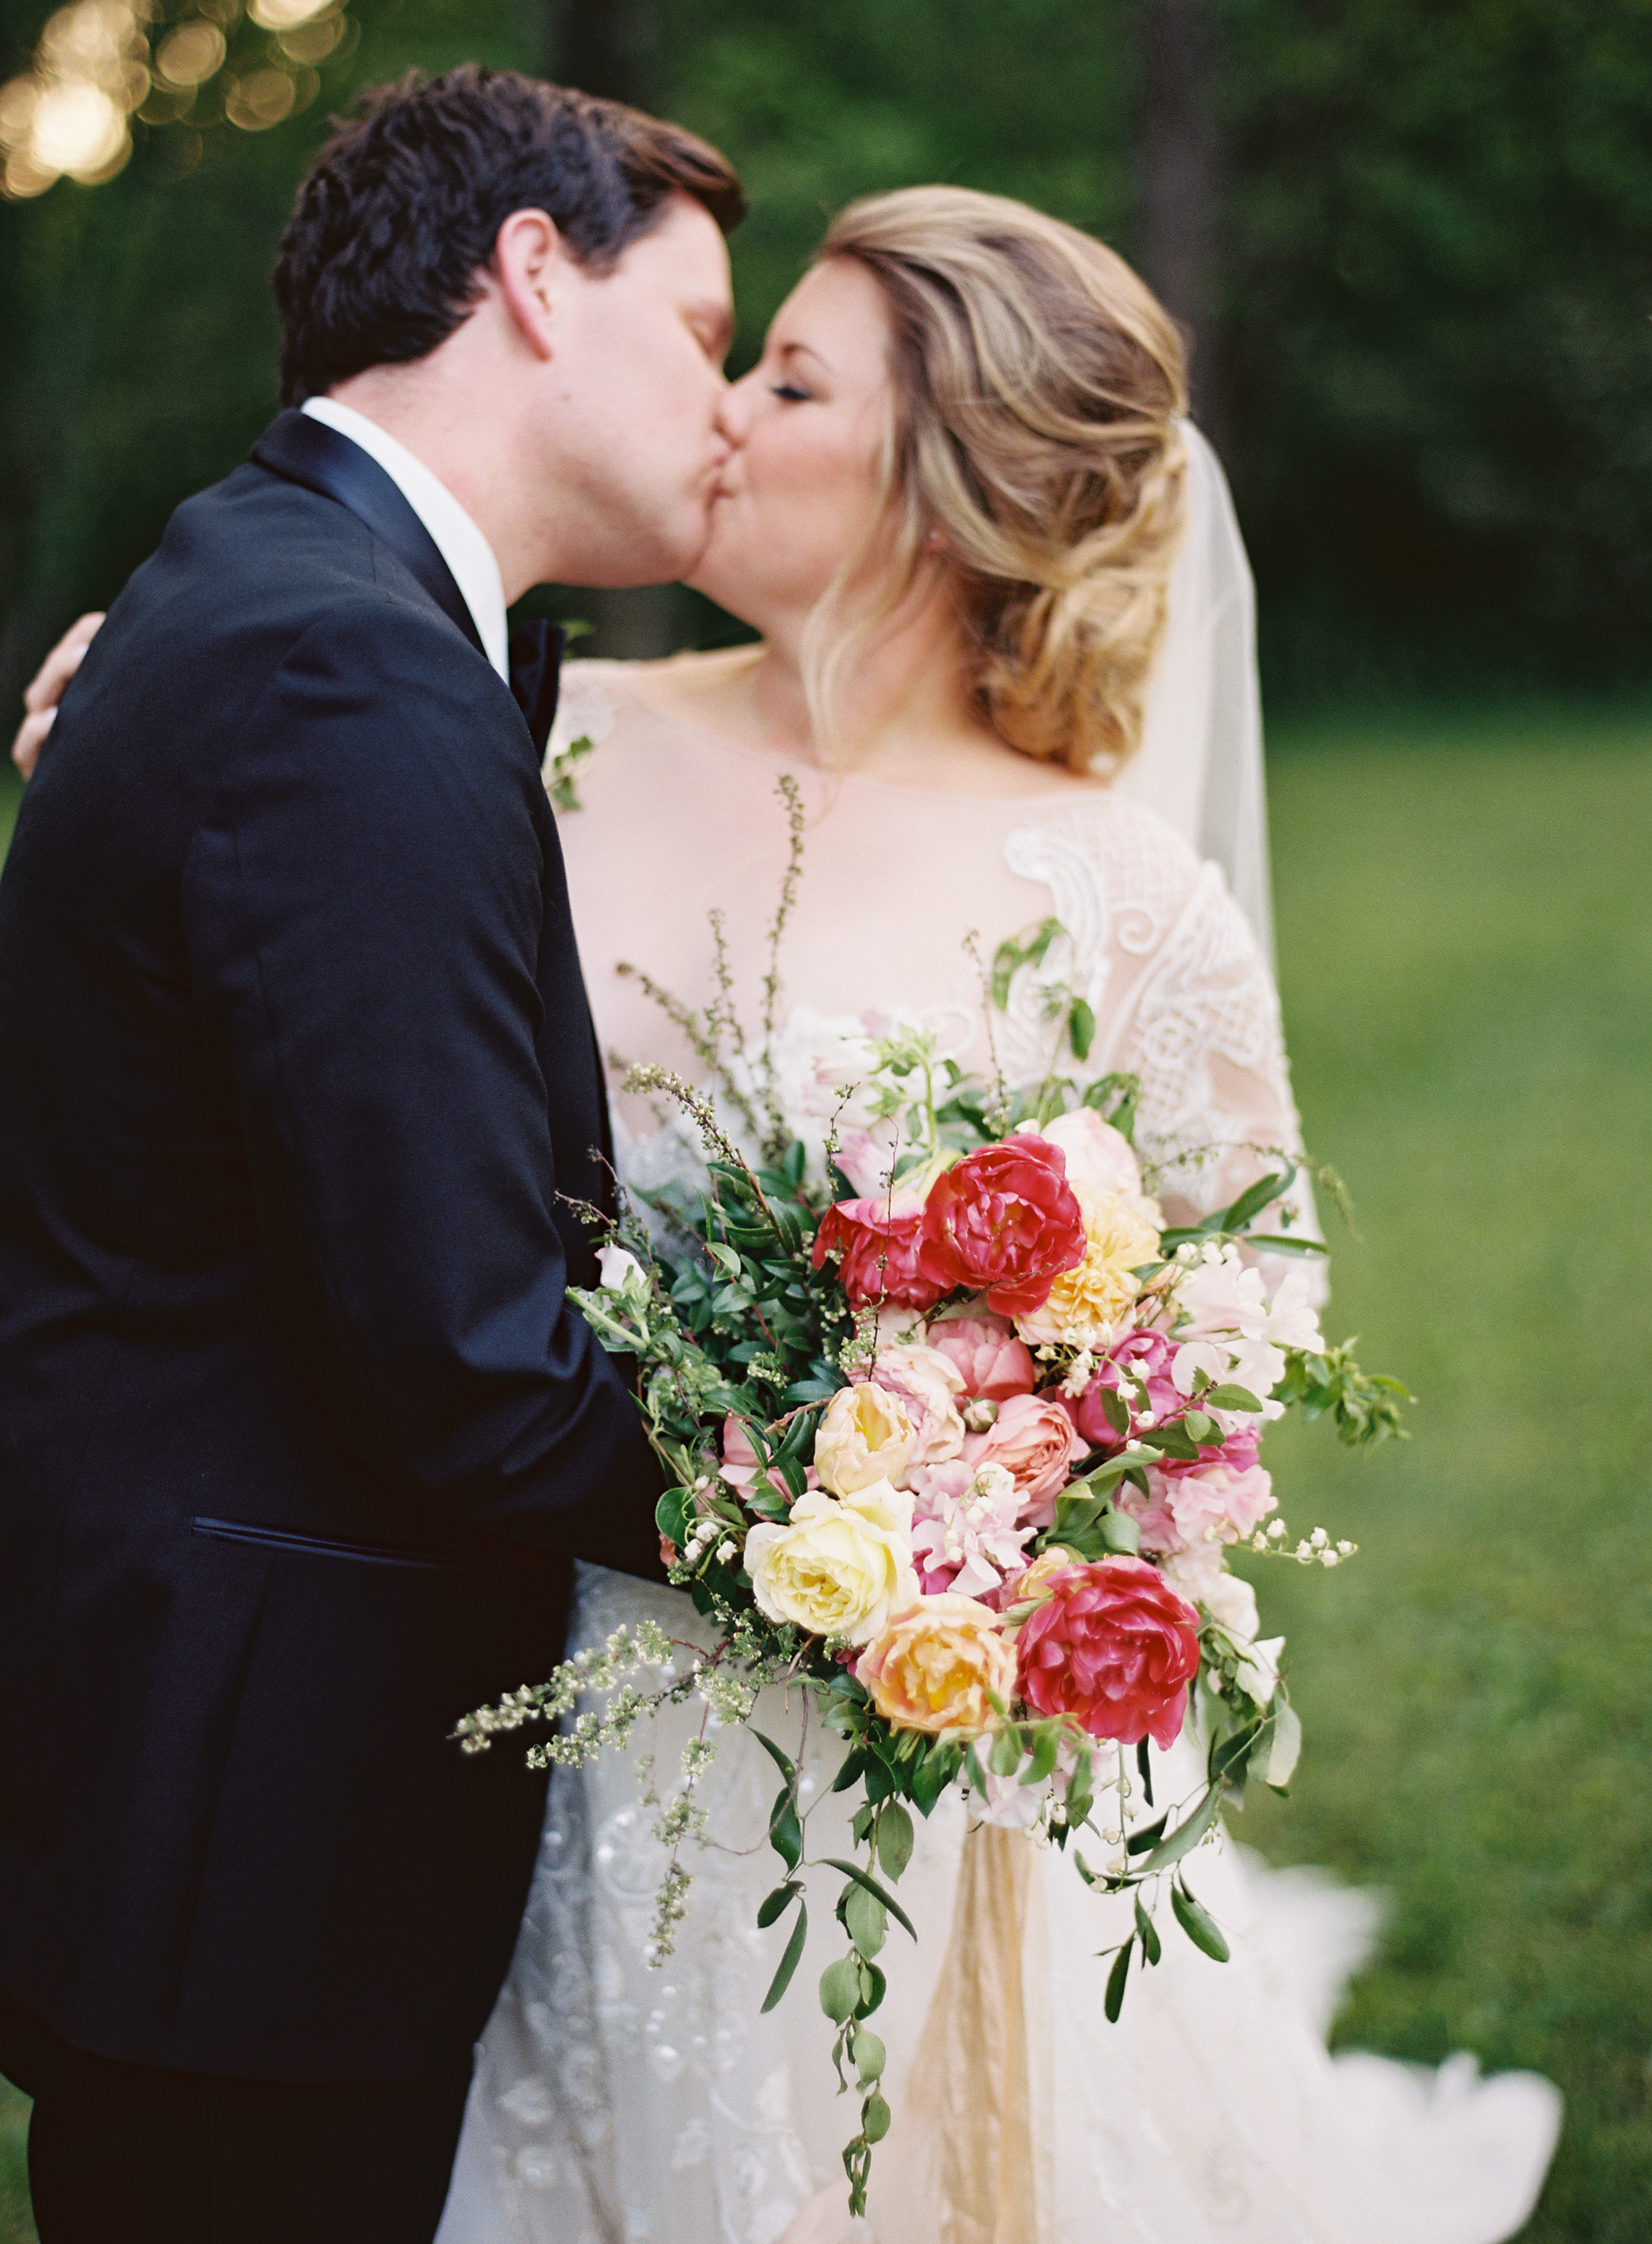 Organic bridal bouquet with blush sweet peas, homegrown pink peonies, California garden roses, and airy greenery // Nashville Wedding Floral Design